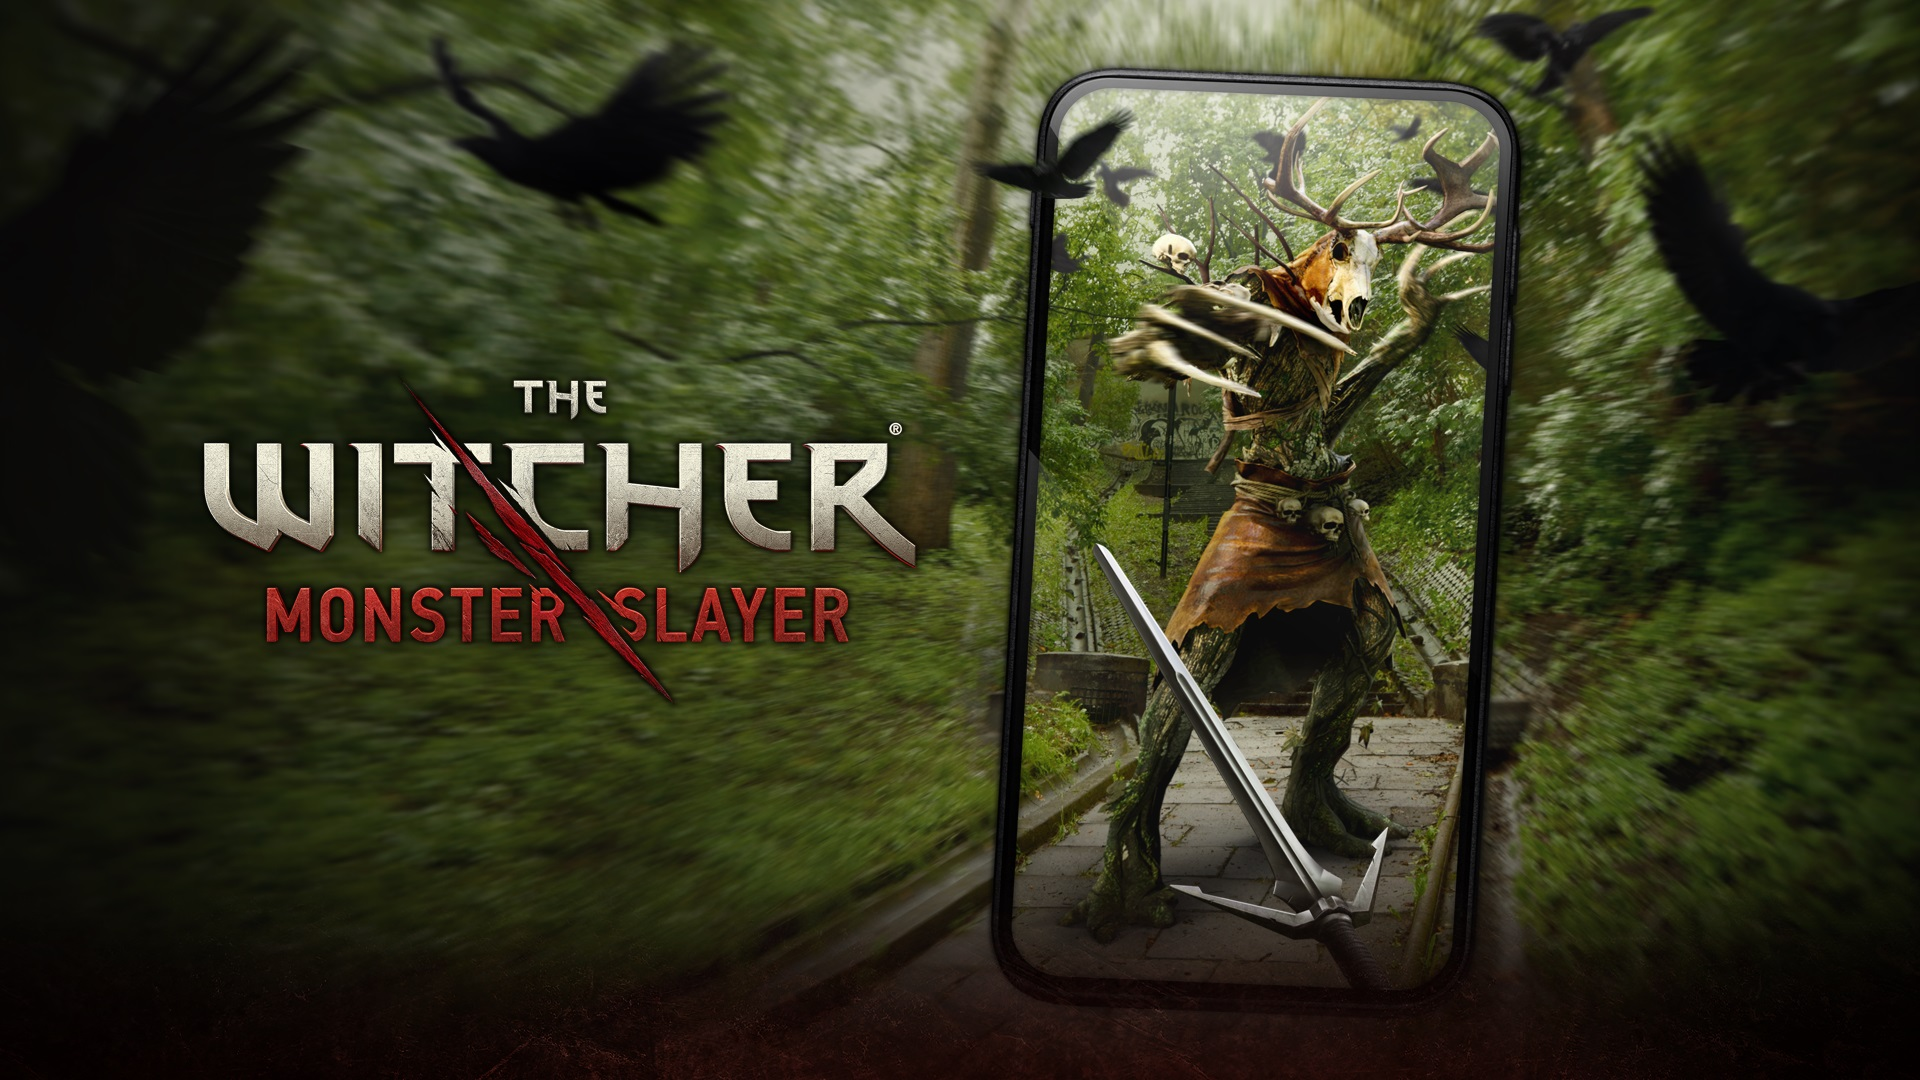 The Witcher: Monster Slayer - Registrations open on Android